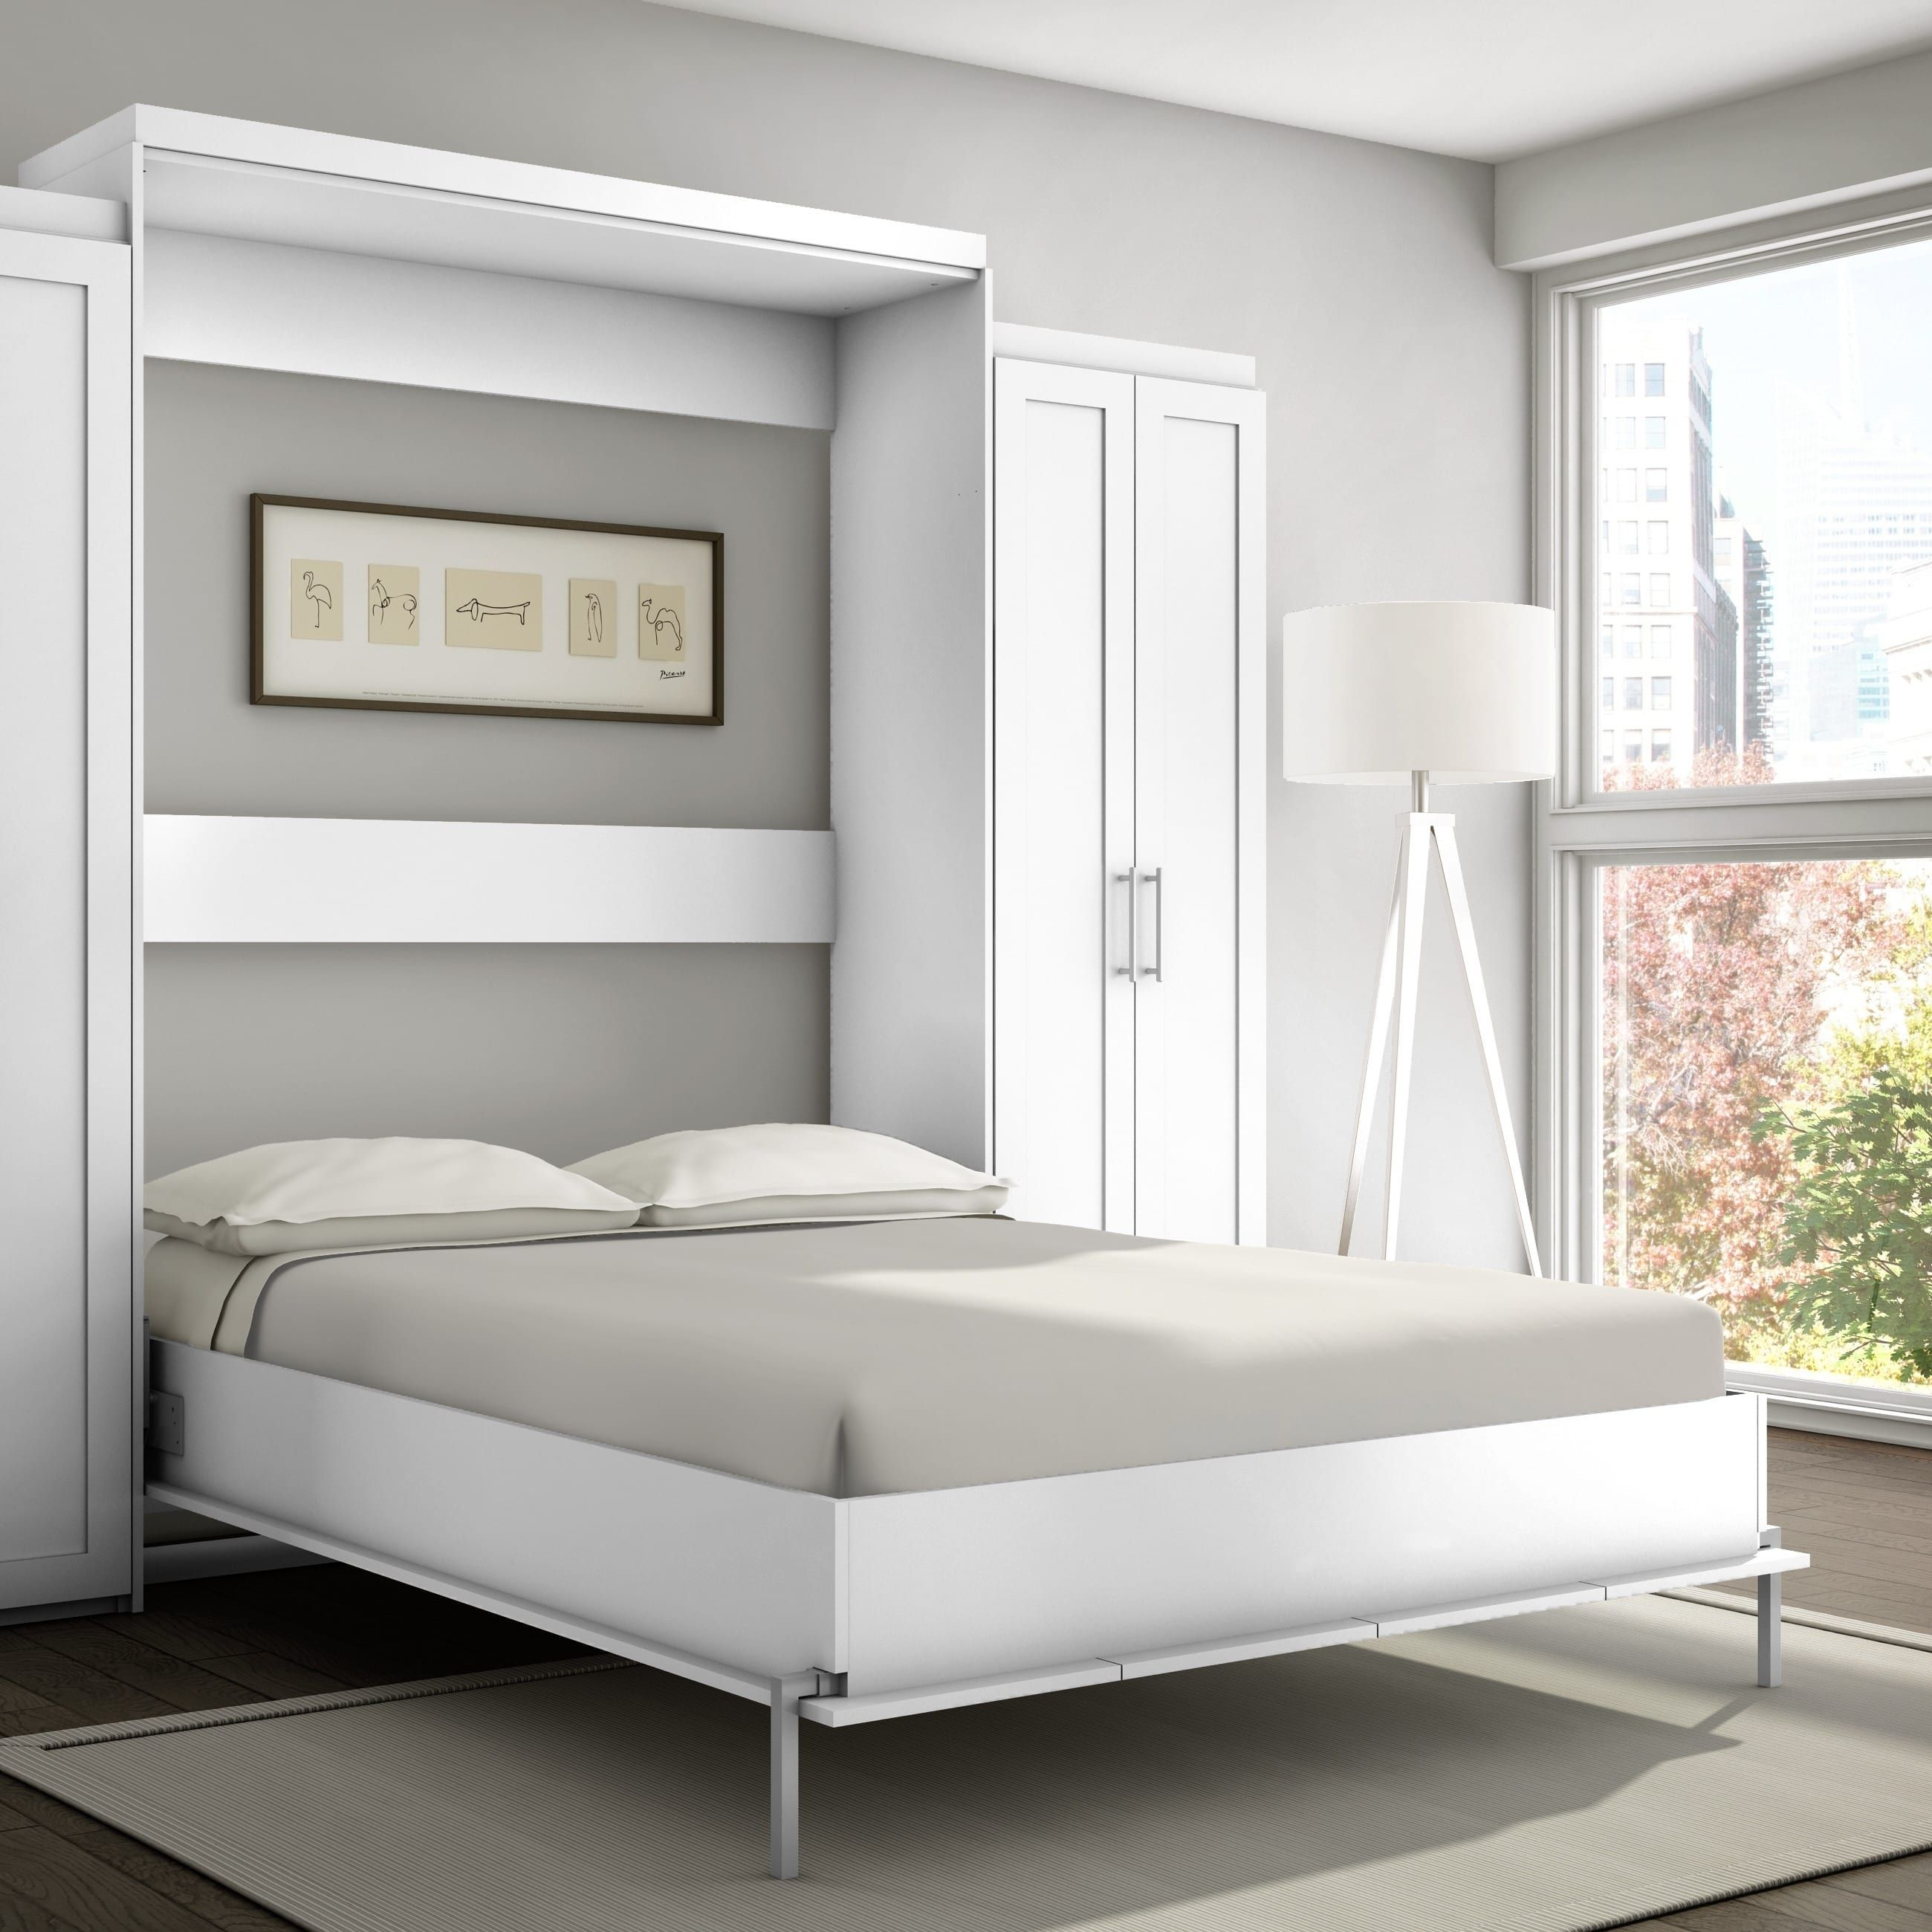 Stellar home furniture shaker queen wall bed off white in